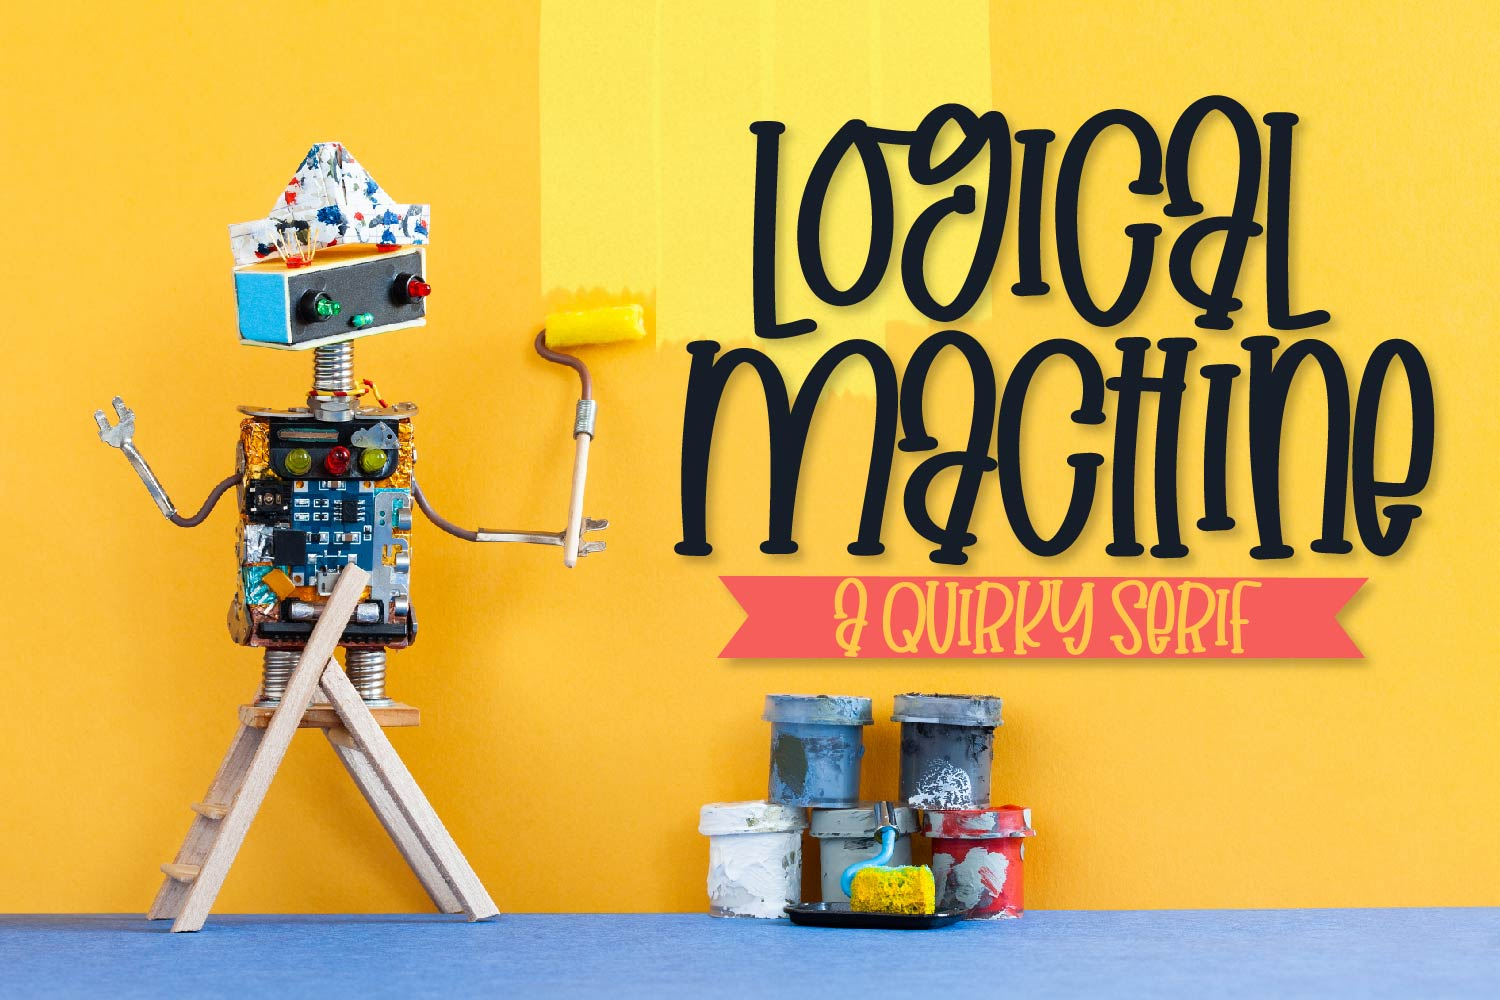 Logical Machine - A Quirky Serif Type example image 1